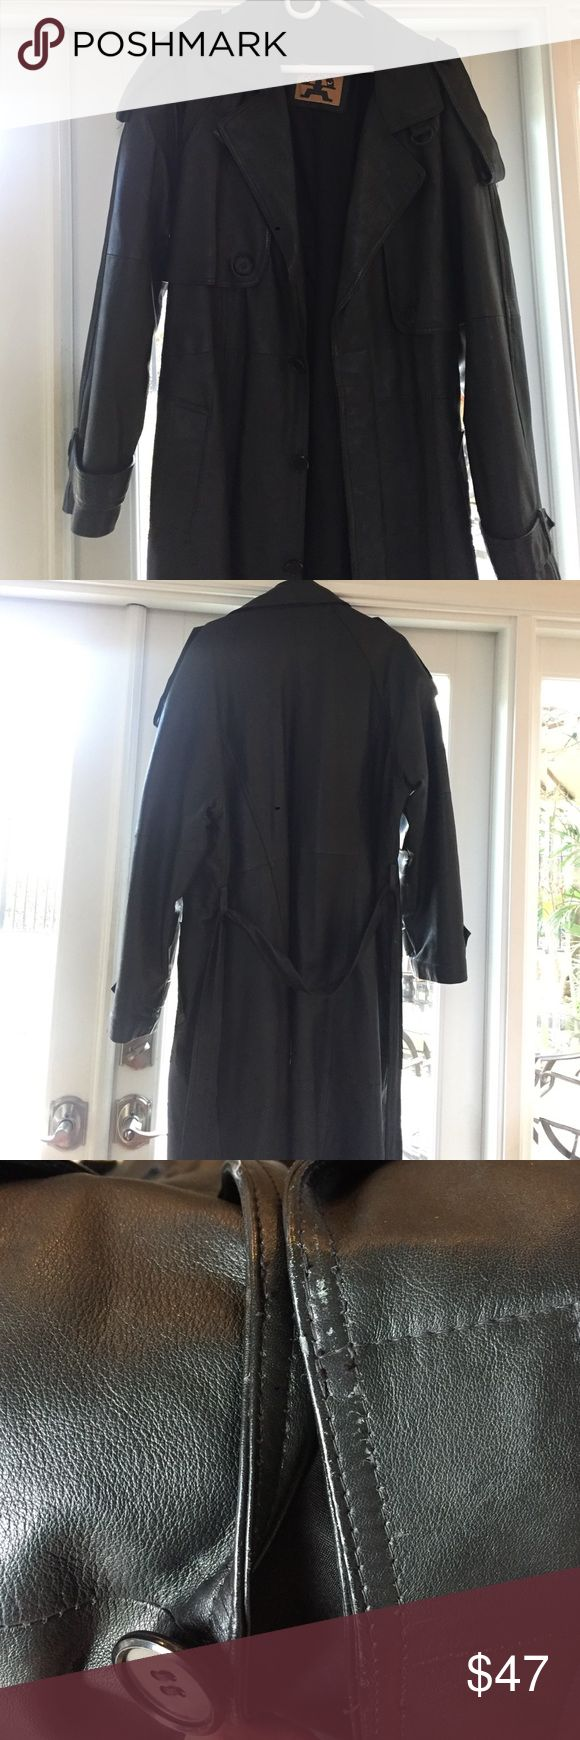 Mens Leather trench coat Men's black leather trench coat. Goes down to about knee or just below depending on hieght. Good leather condition except small stain on bottom front and a little wear by button area. Hardly noticeable. Jackets & Coats Trench Coats